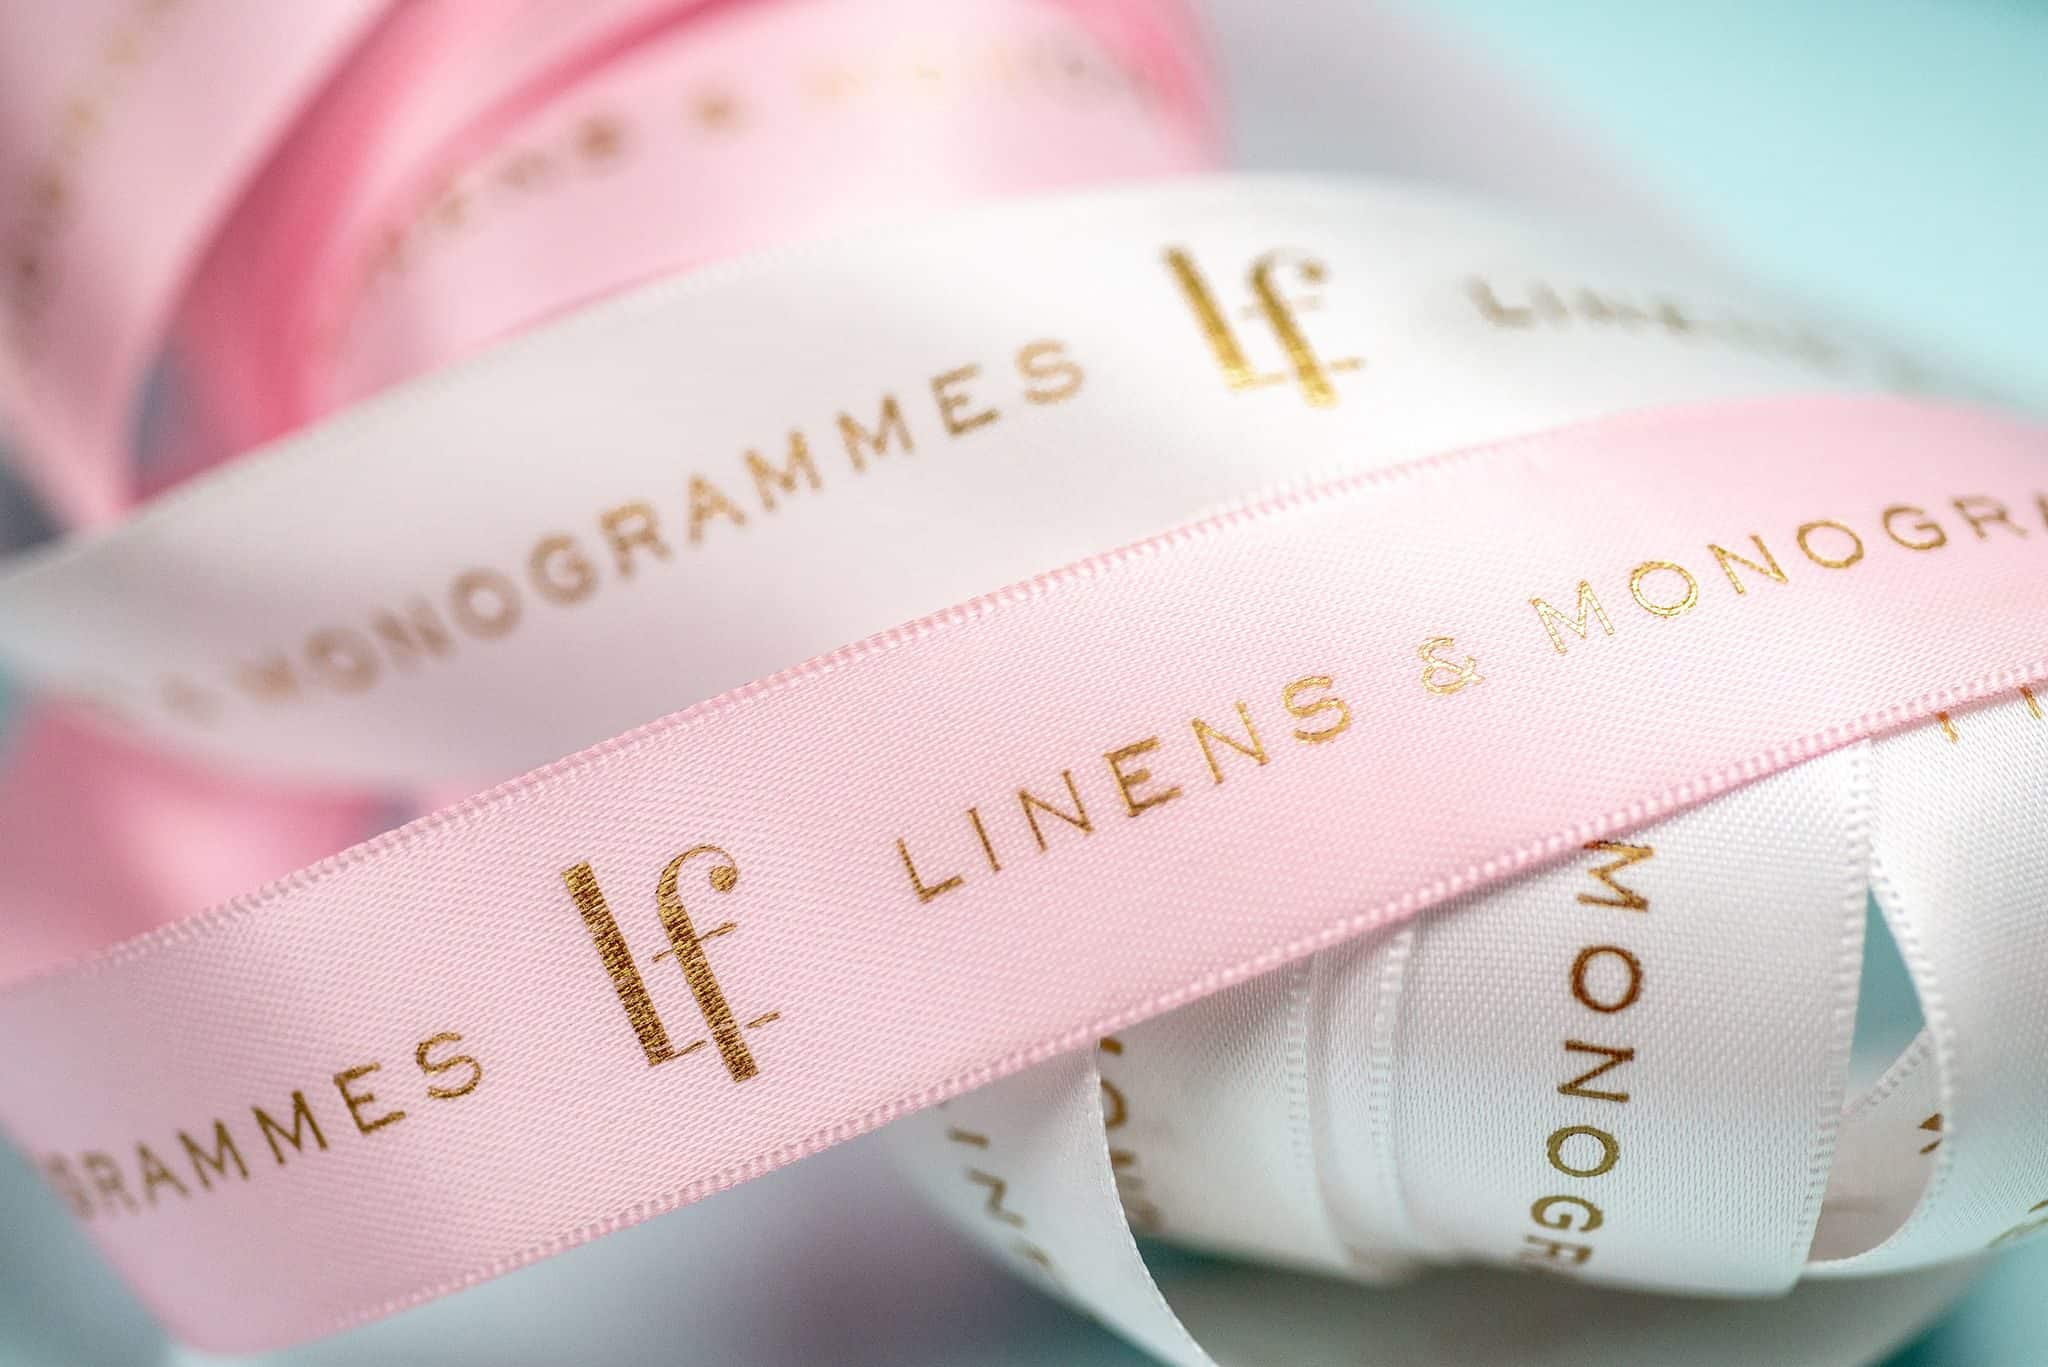 Custom foil stamped ribbon for Lettrefina Linens & Monogrammes | Designed by Field of Study: A branding and graphic design consultancy | Houston TX | Jennifer Blanco & John Earles